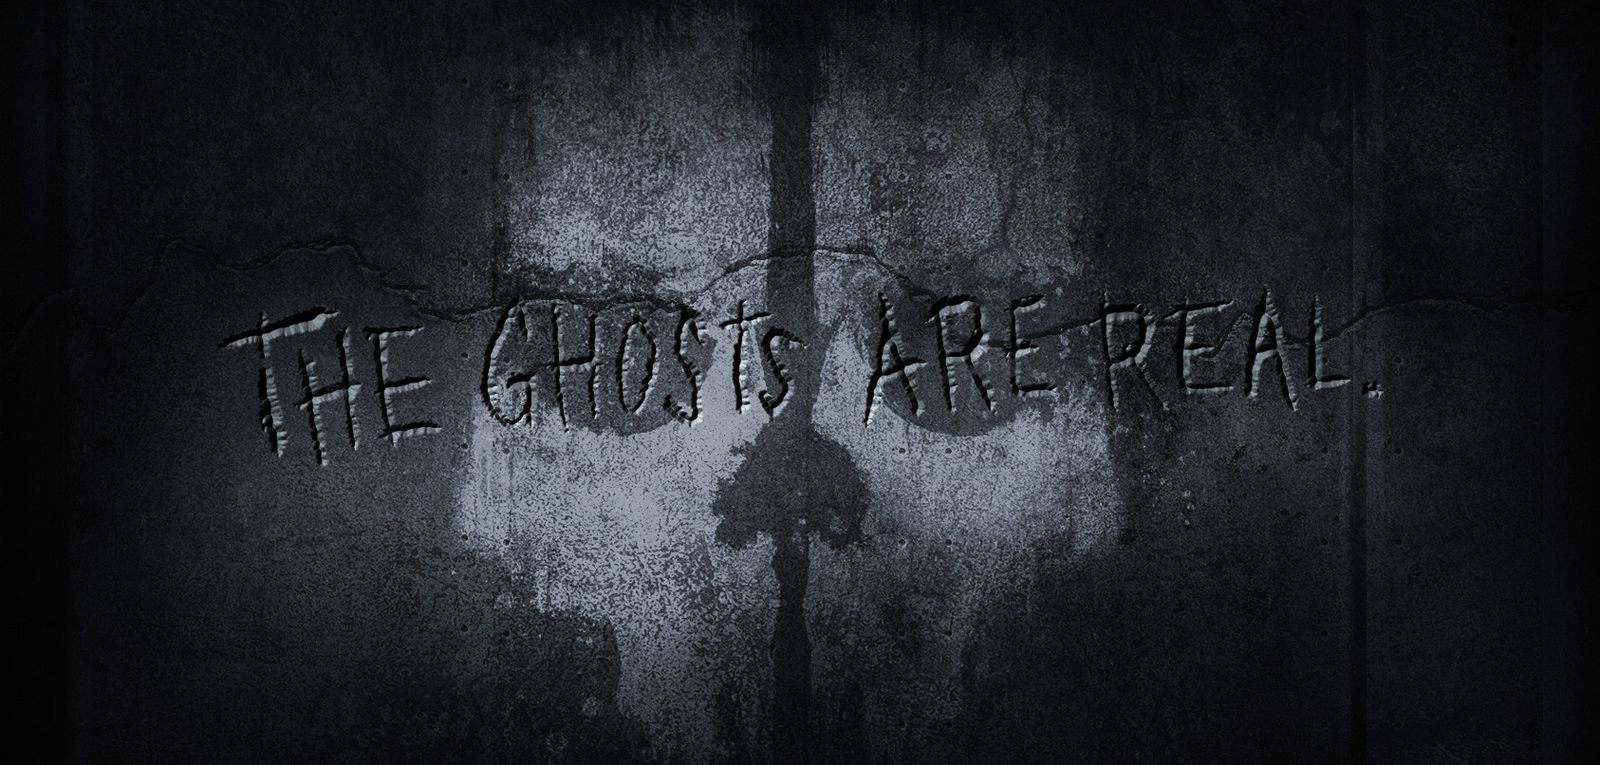 Call Of Duty Ghost LE trailer